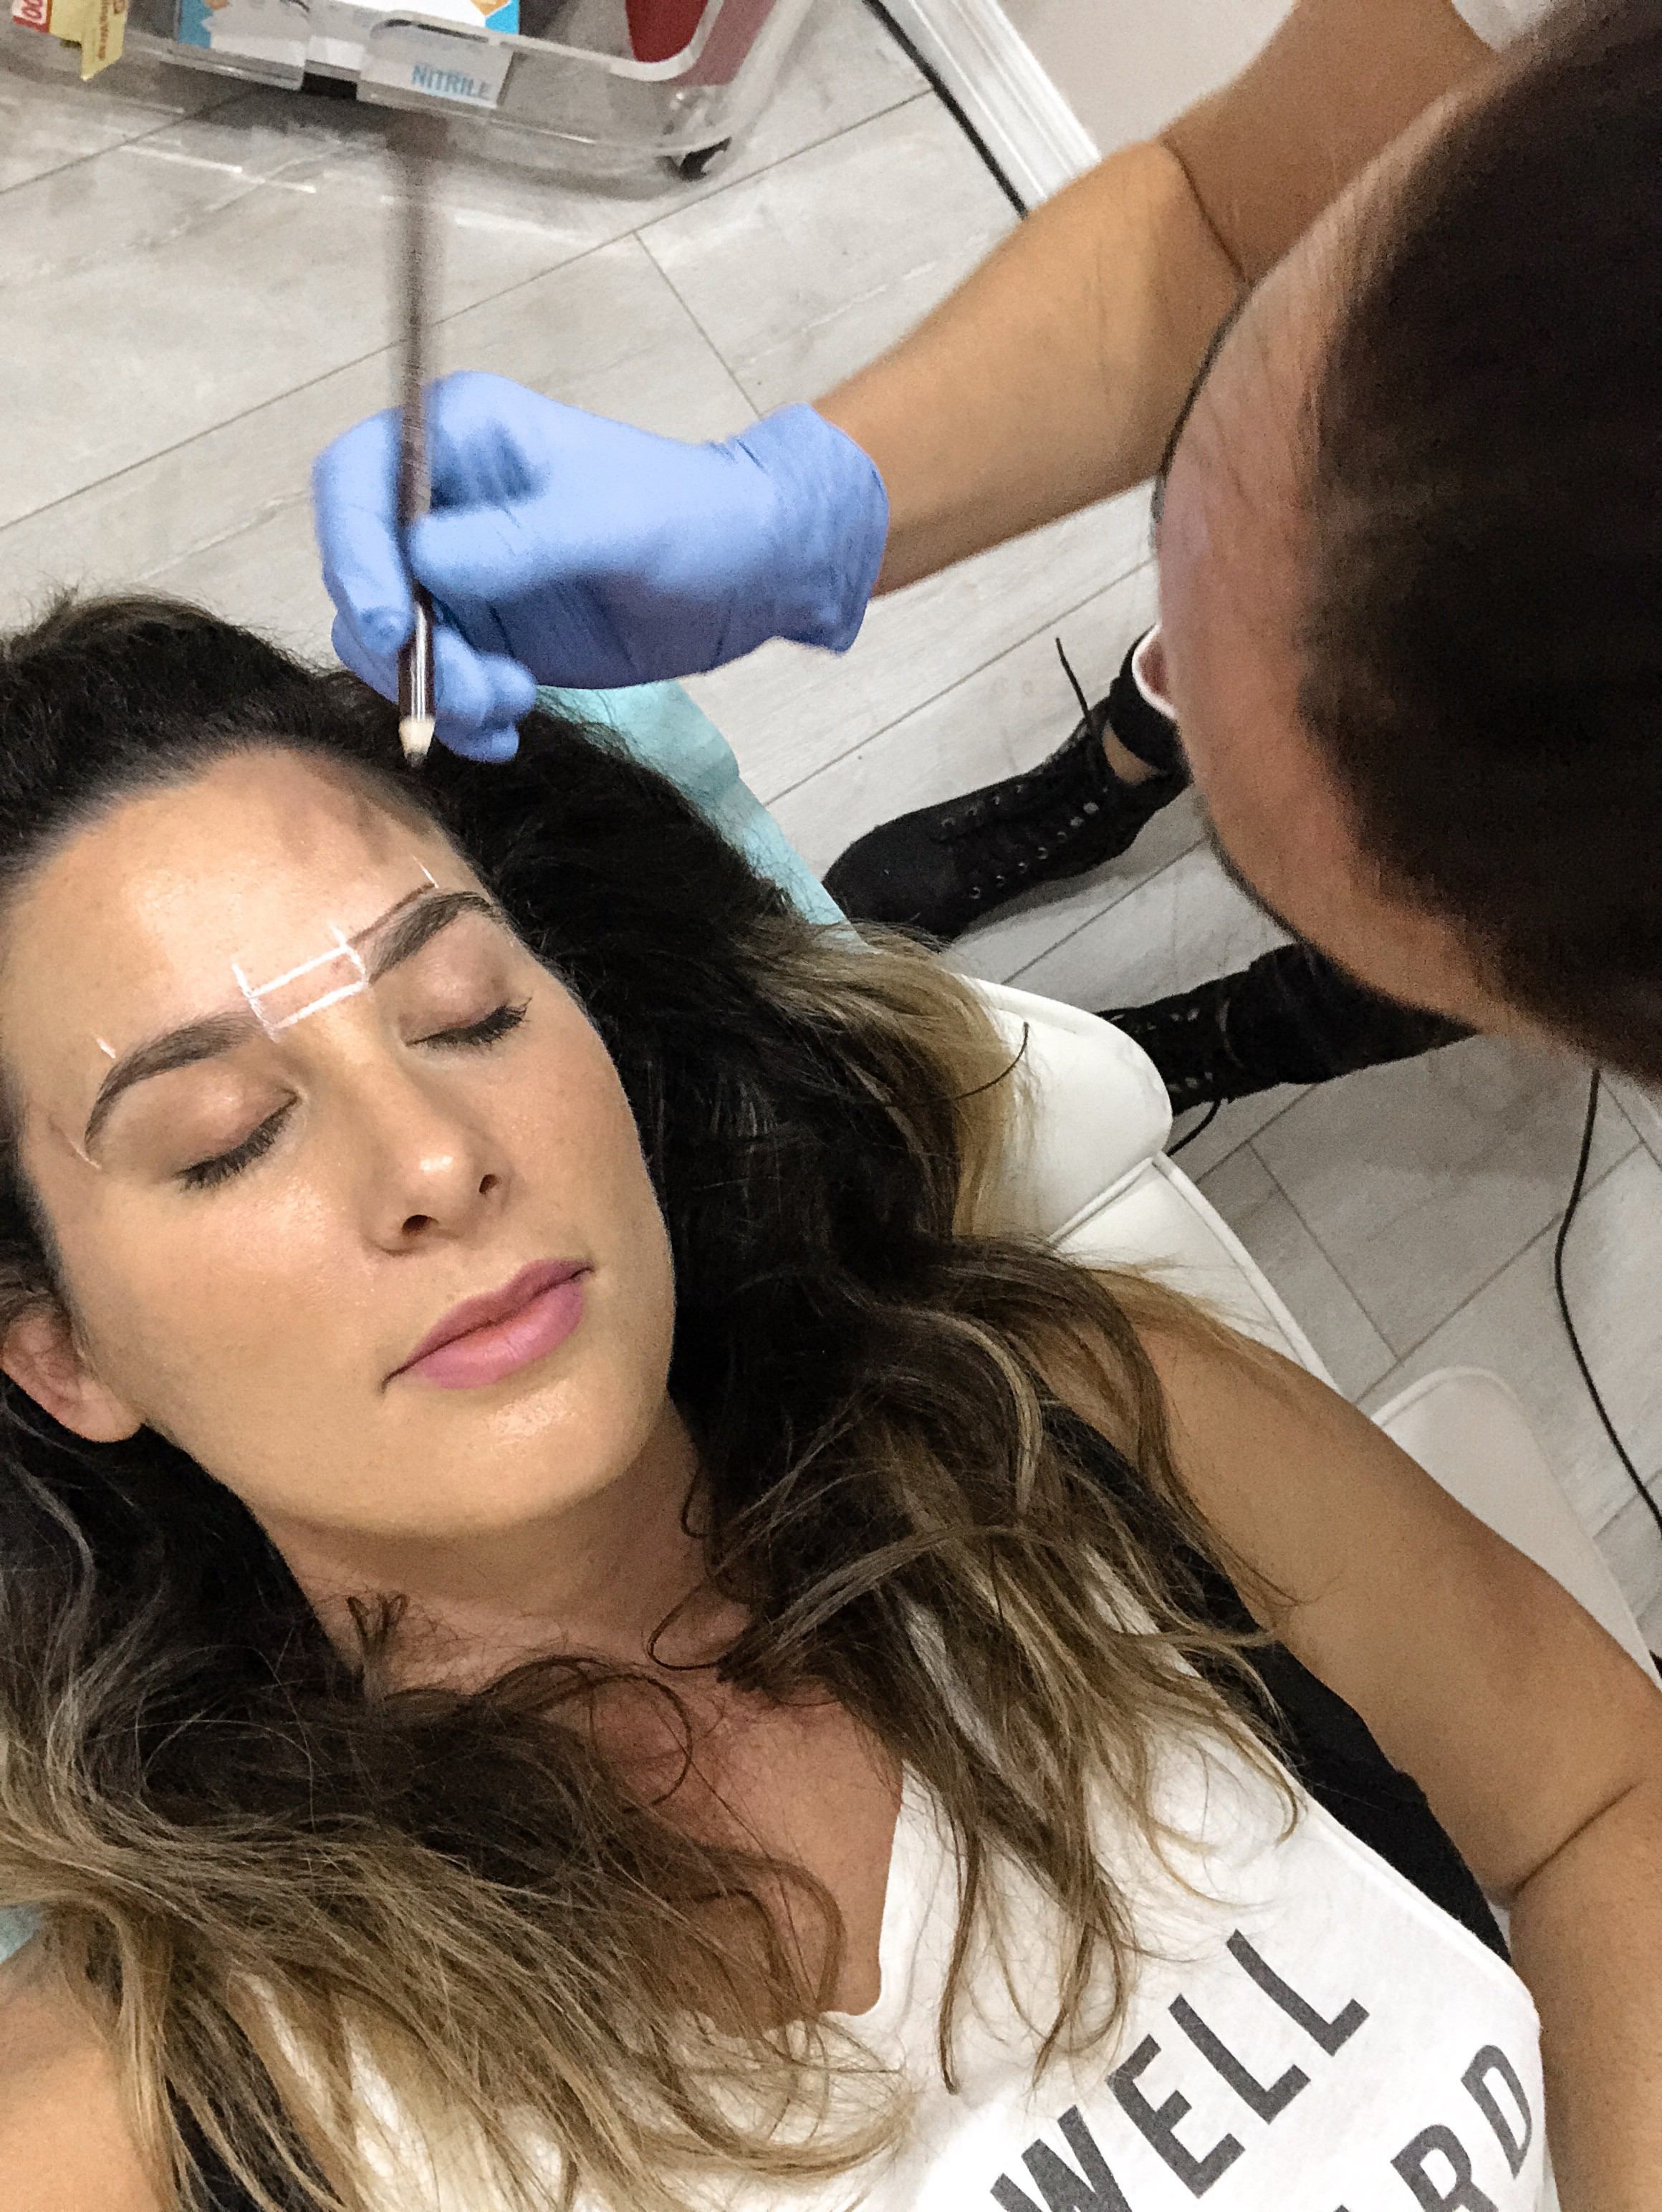 A step by step microblading guide through my own microblading experience, before and after pictures, and FAQ to help you on your own microblading journey!